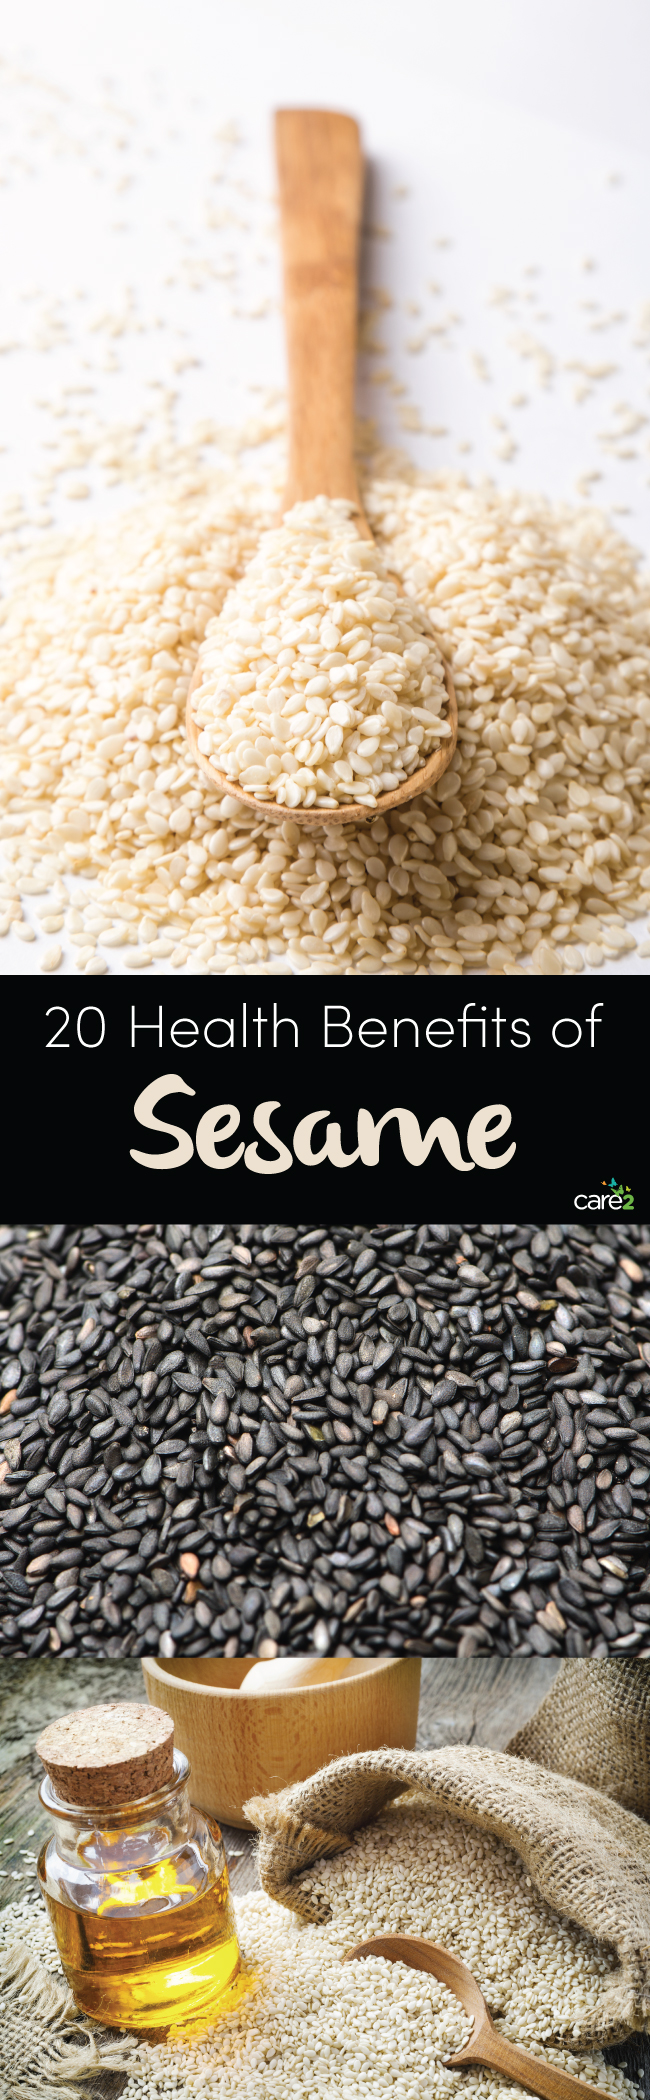 20 Health Benefits of Sesame